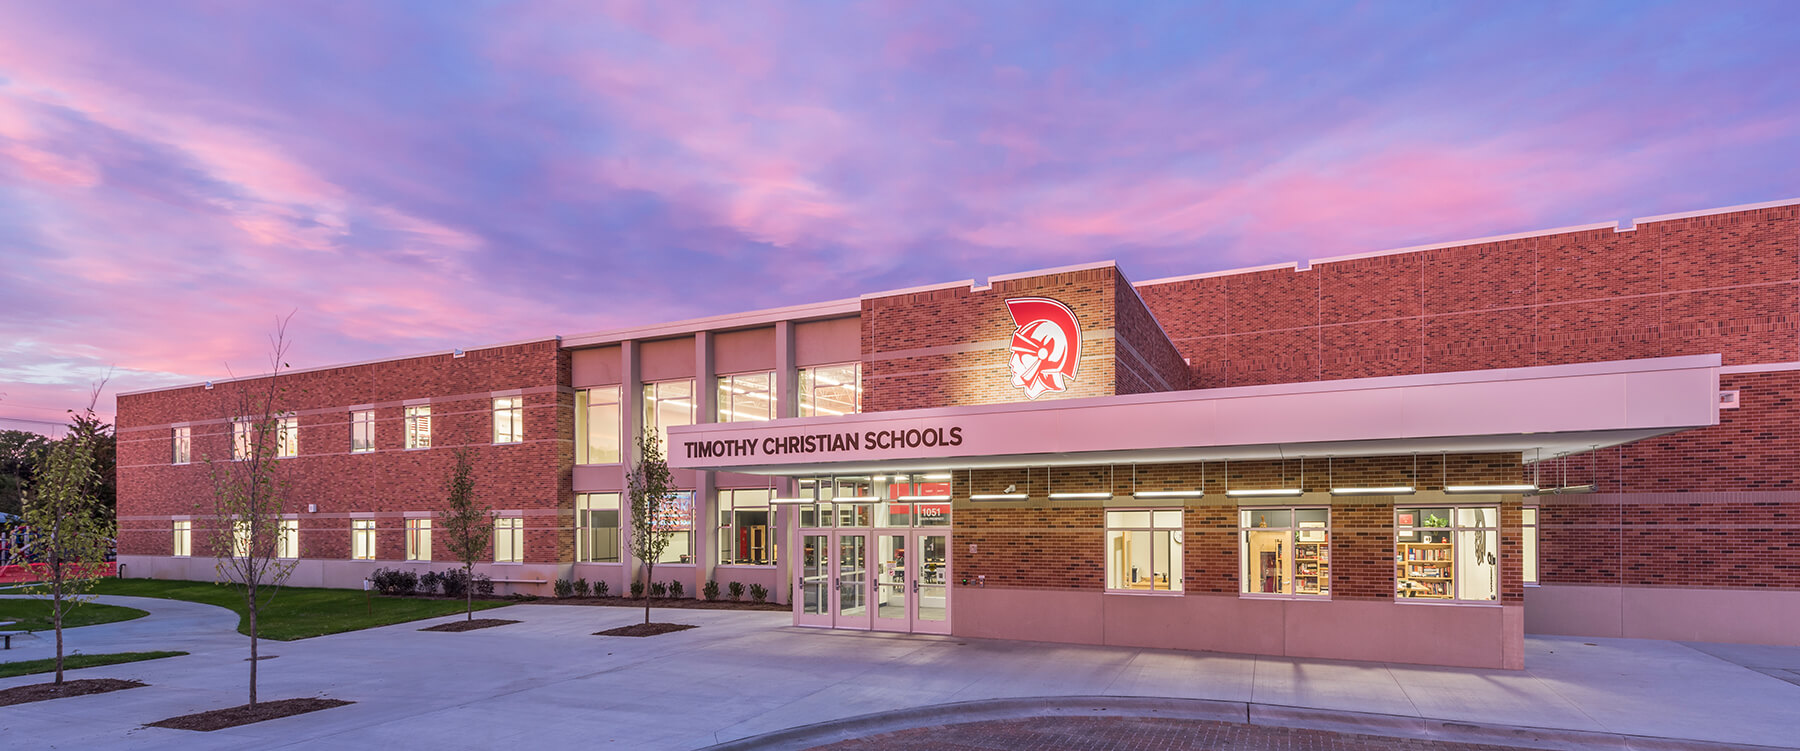 Timothy Christian Middle School exterior at dusk